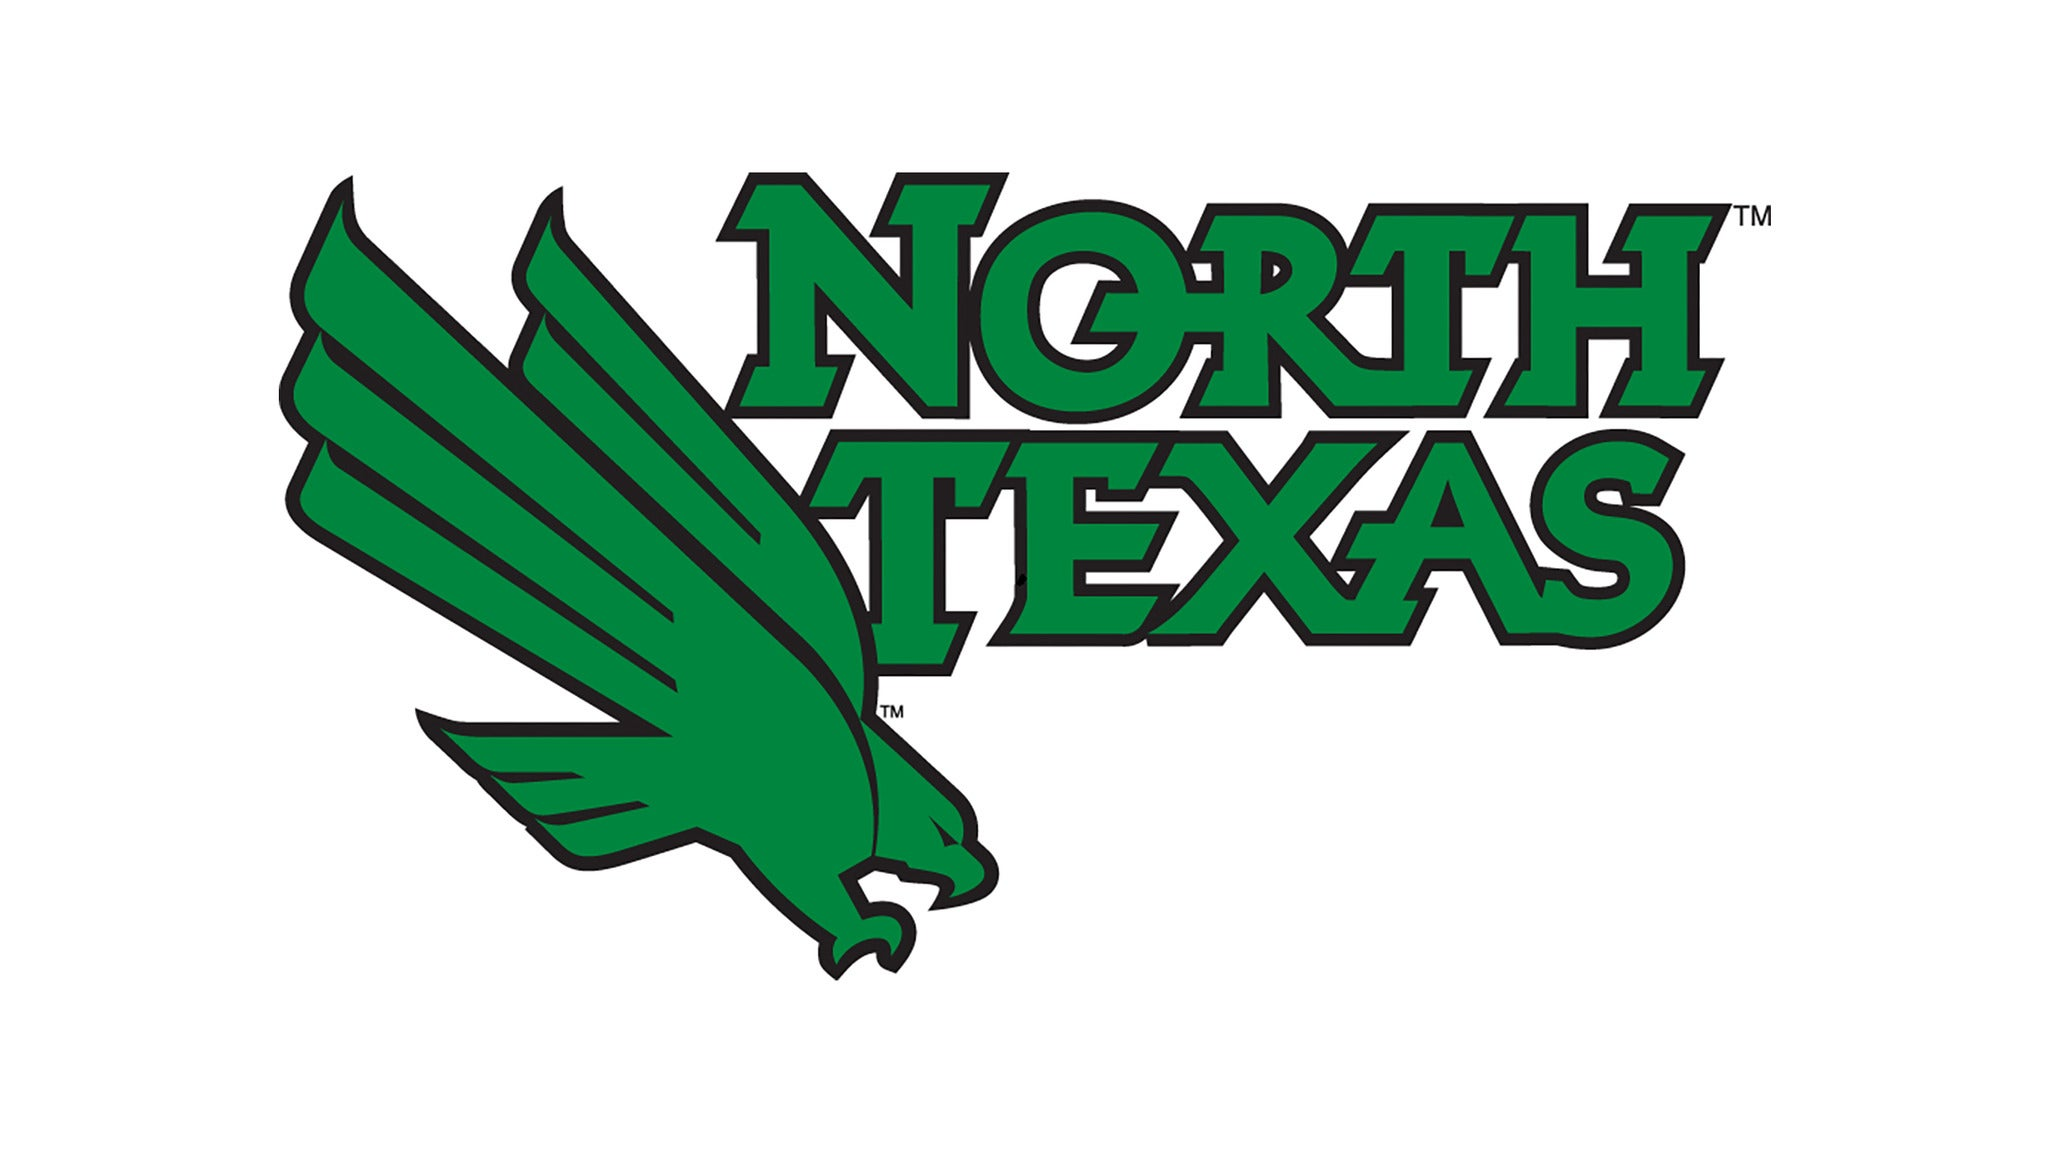 University of North Texas Mean Green Mens Basketball